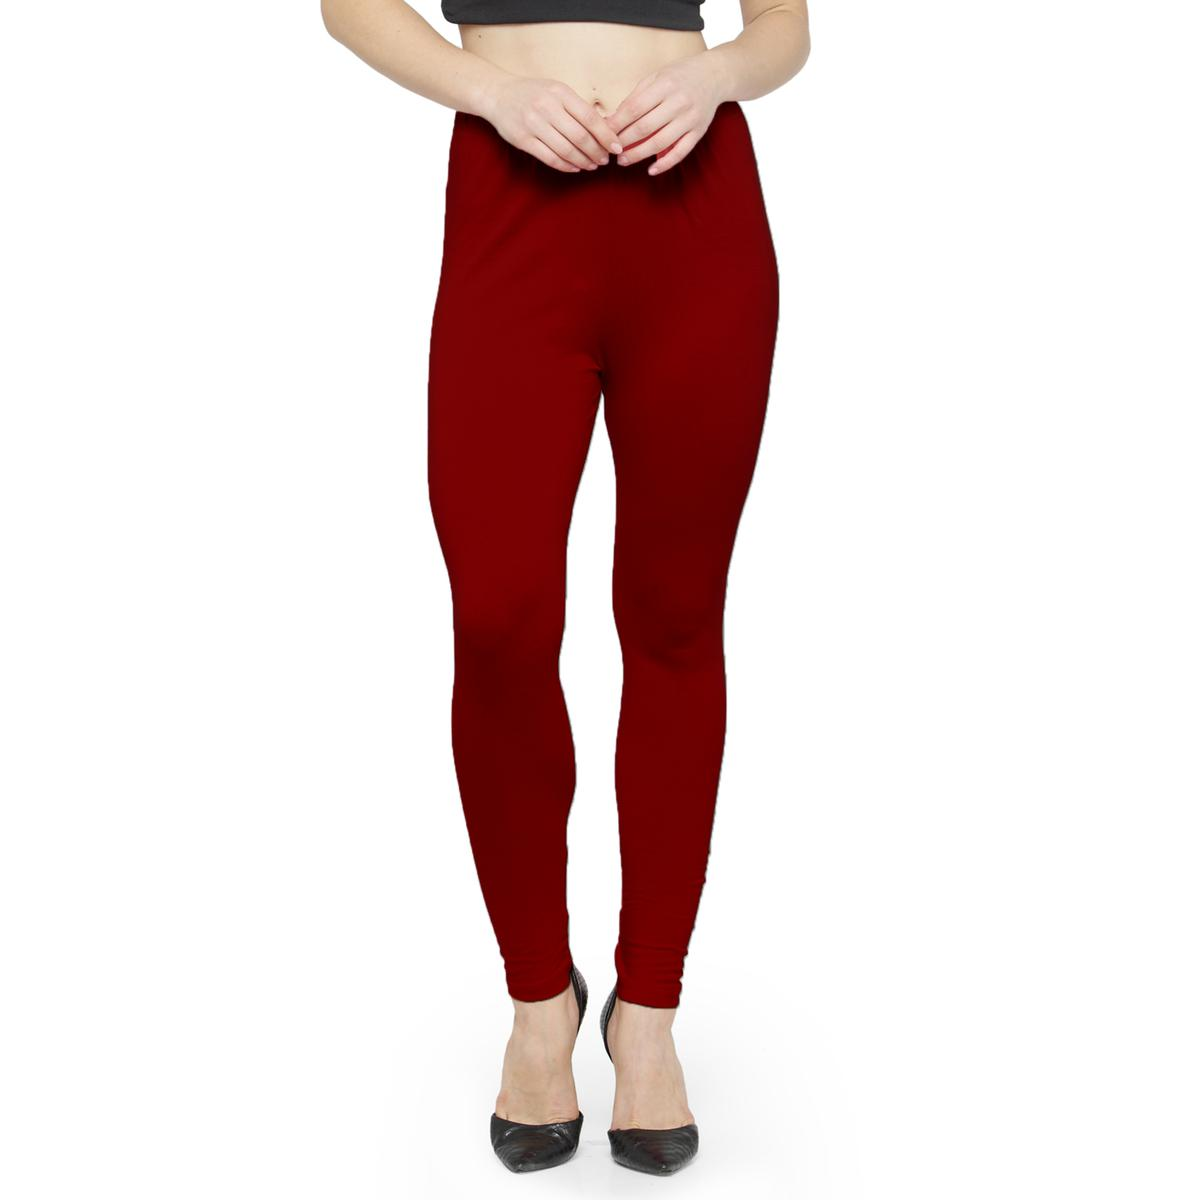 Mesmerising Blood Red Colored Casual Wear Ankle Length Leggings